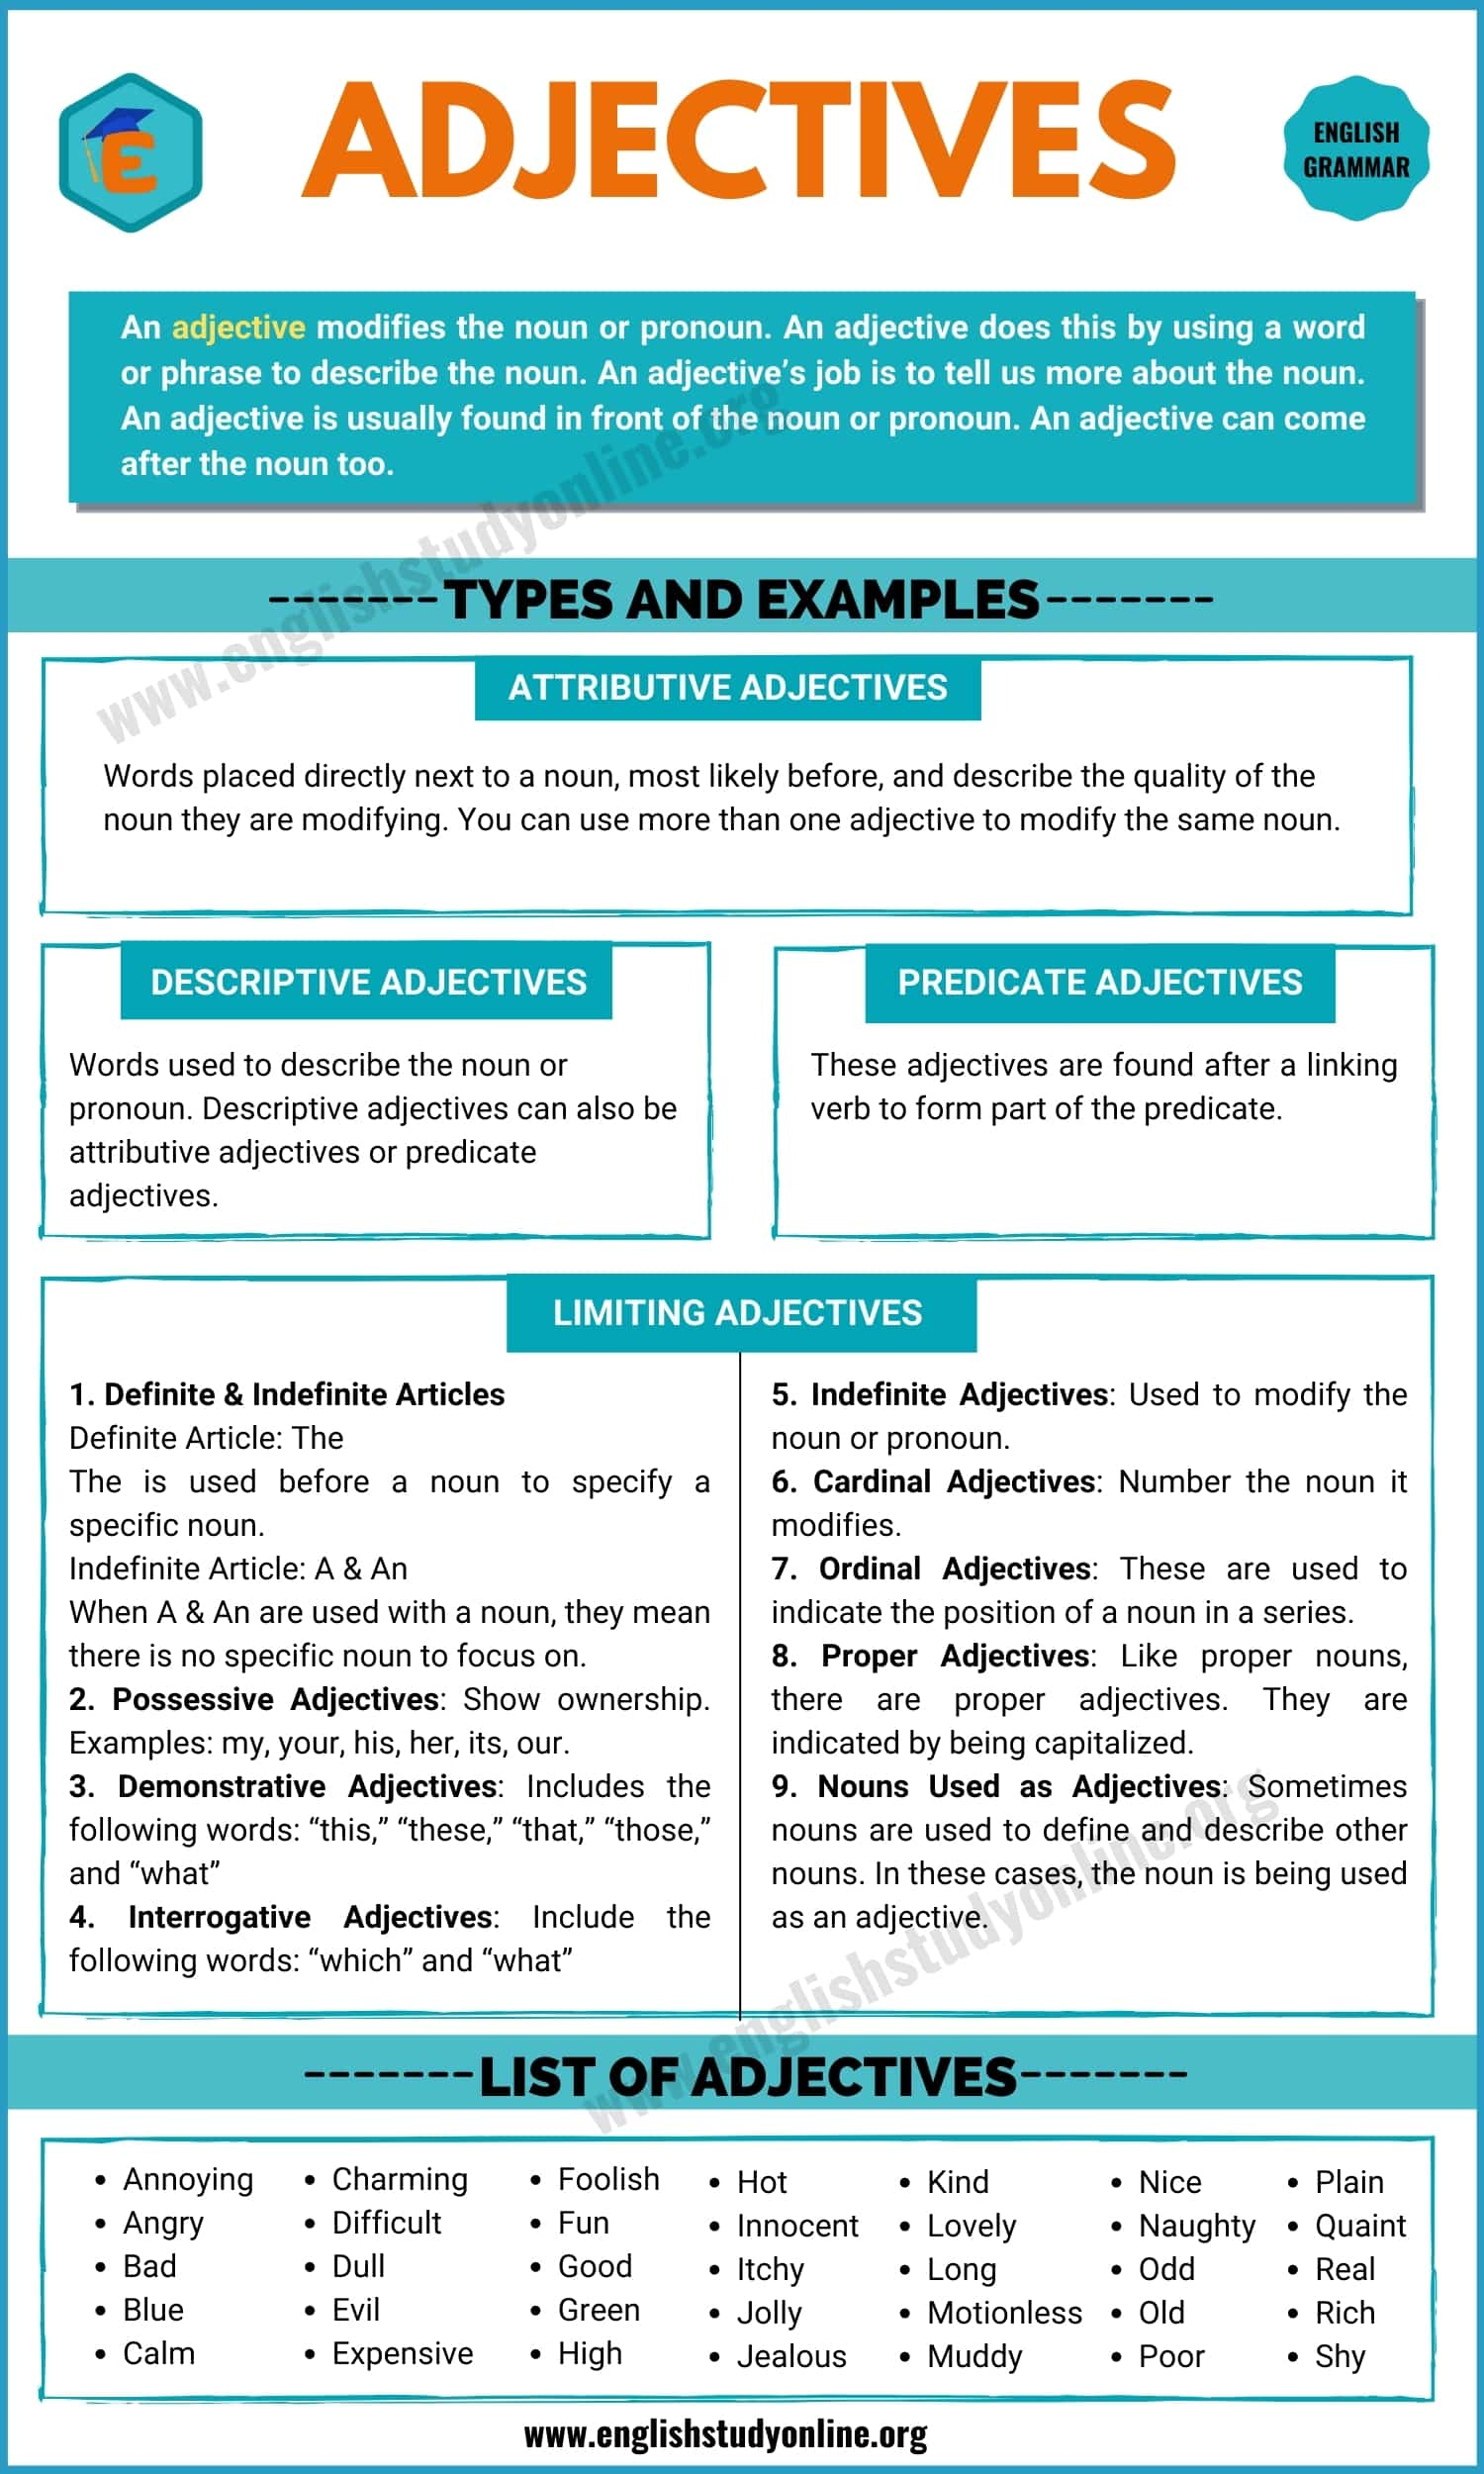 Adjectives | Definition, Rules, Different Types with Remarkable Examples